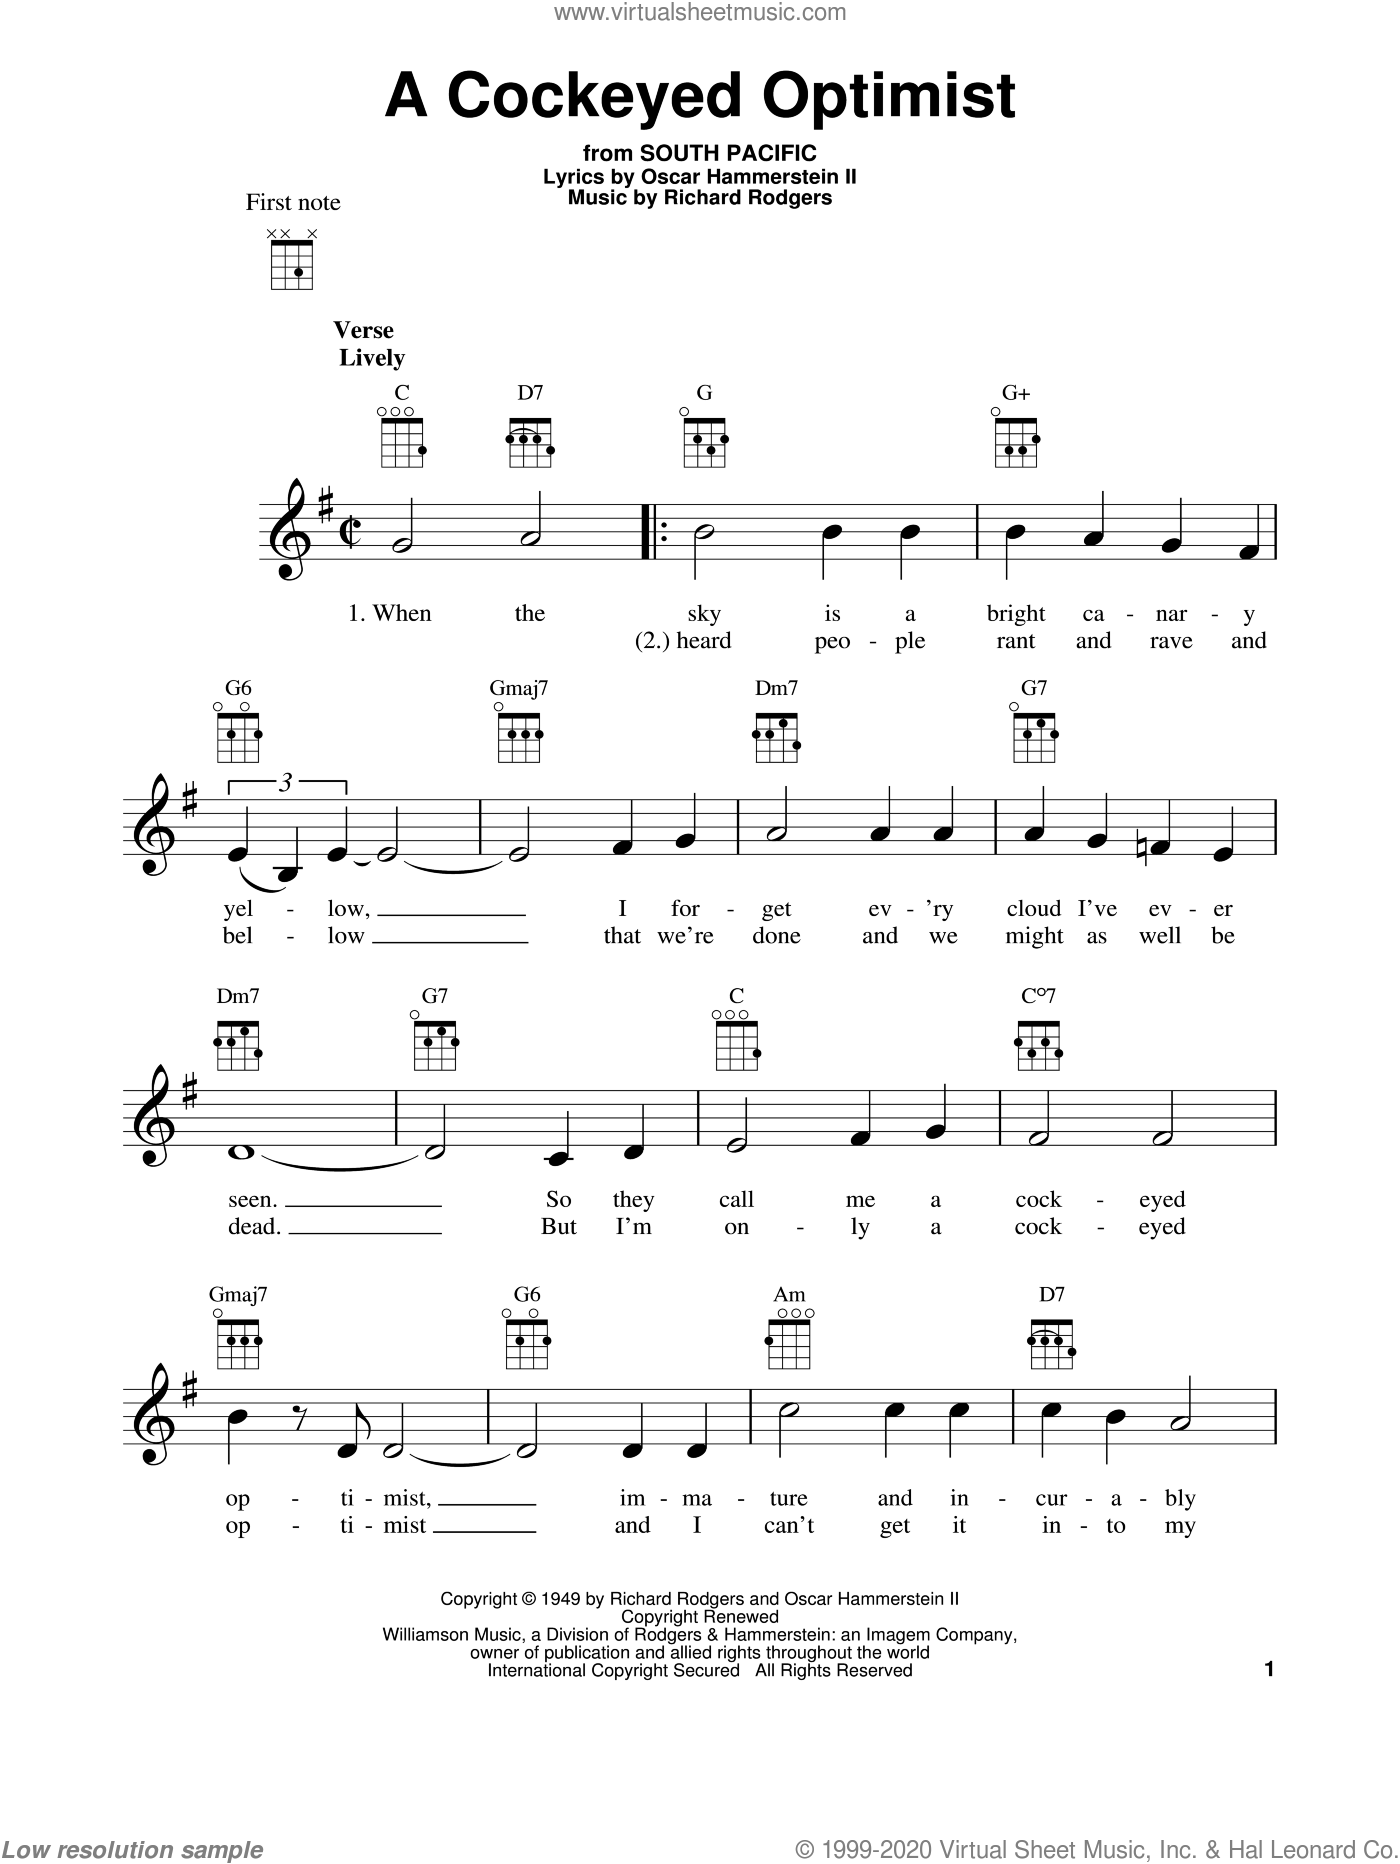 A Cockeyed Optimist sheet music for ukulele by Richard Rodgers